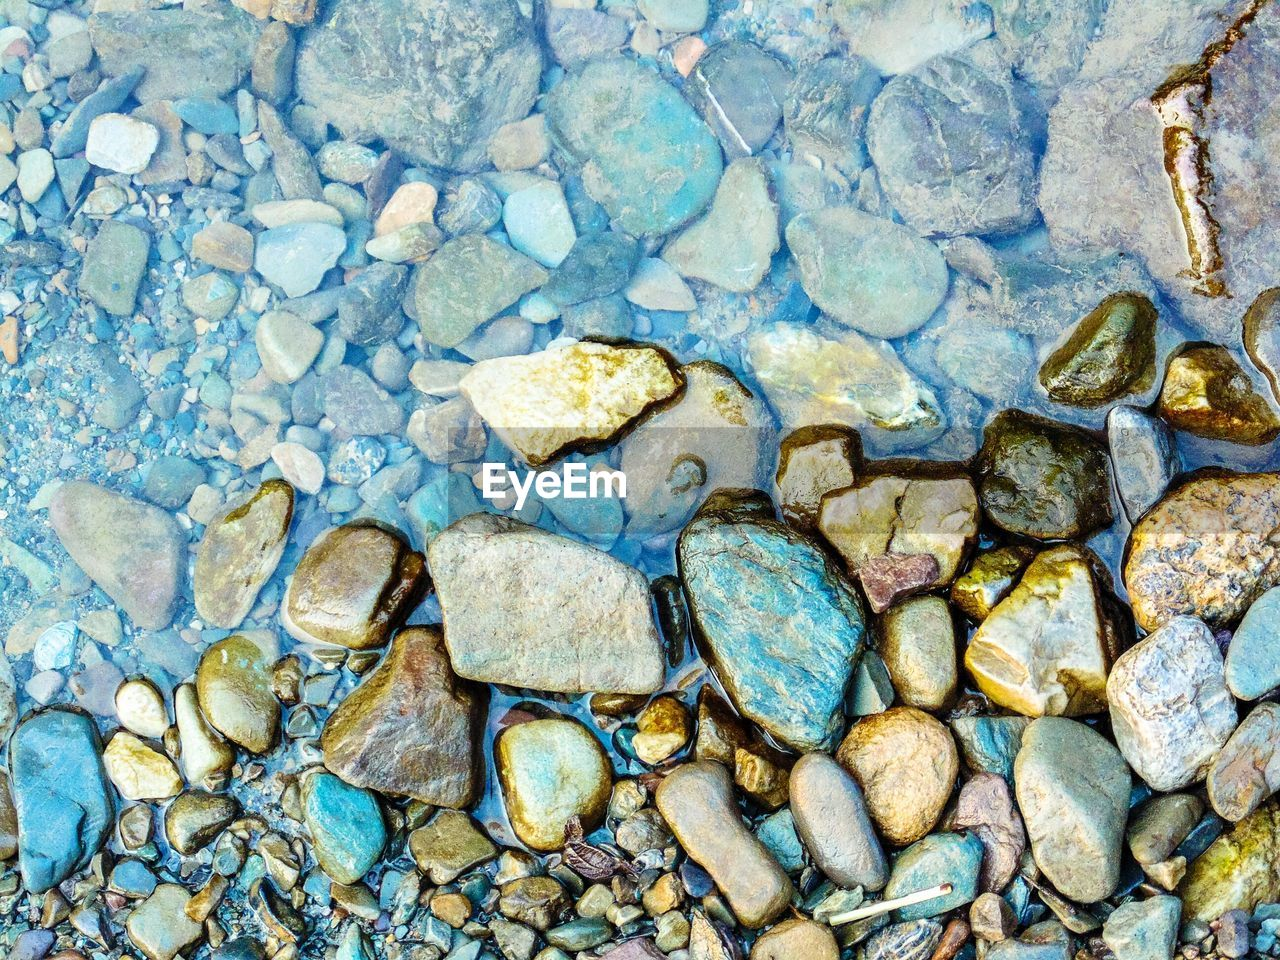 pebble, stone - object, rock - object, full frame, backgrounds, no people, beach, nature, textured, pebble beach, outdoors, close-up, day, water